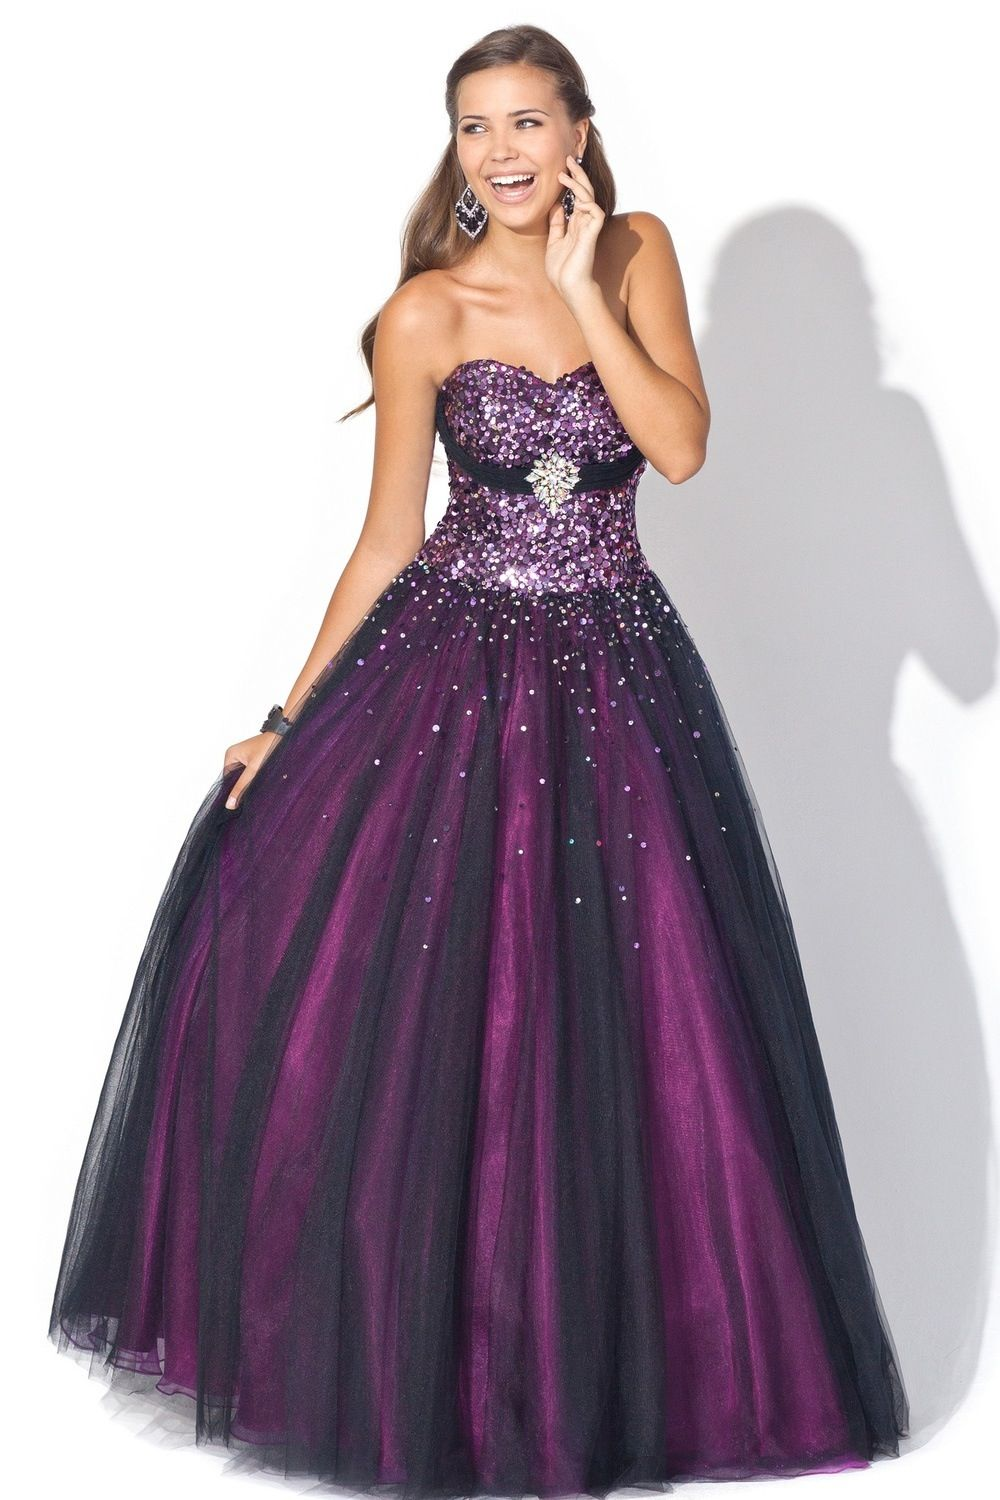 Two tone sequin wedding dress  Dark purple ball gown  Prom Night  Pinterest  Dark purple Prom